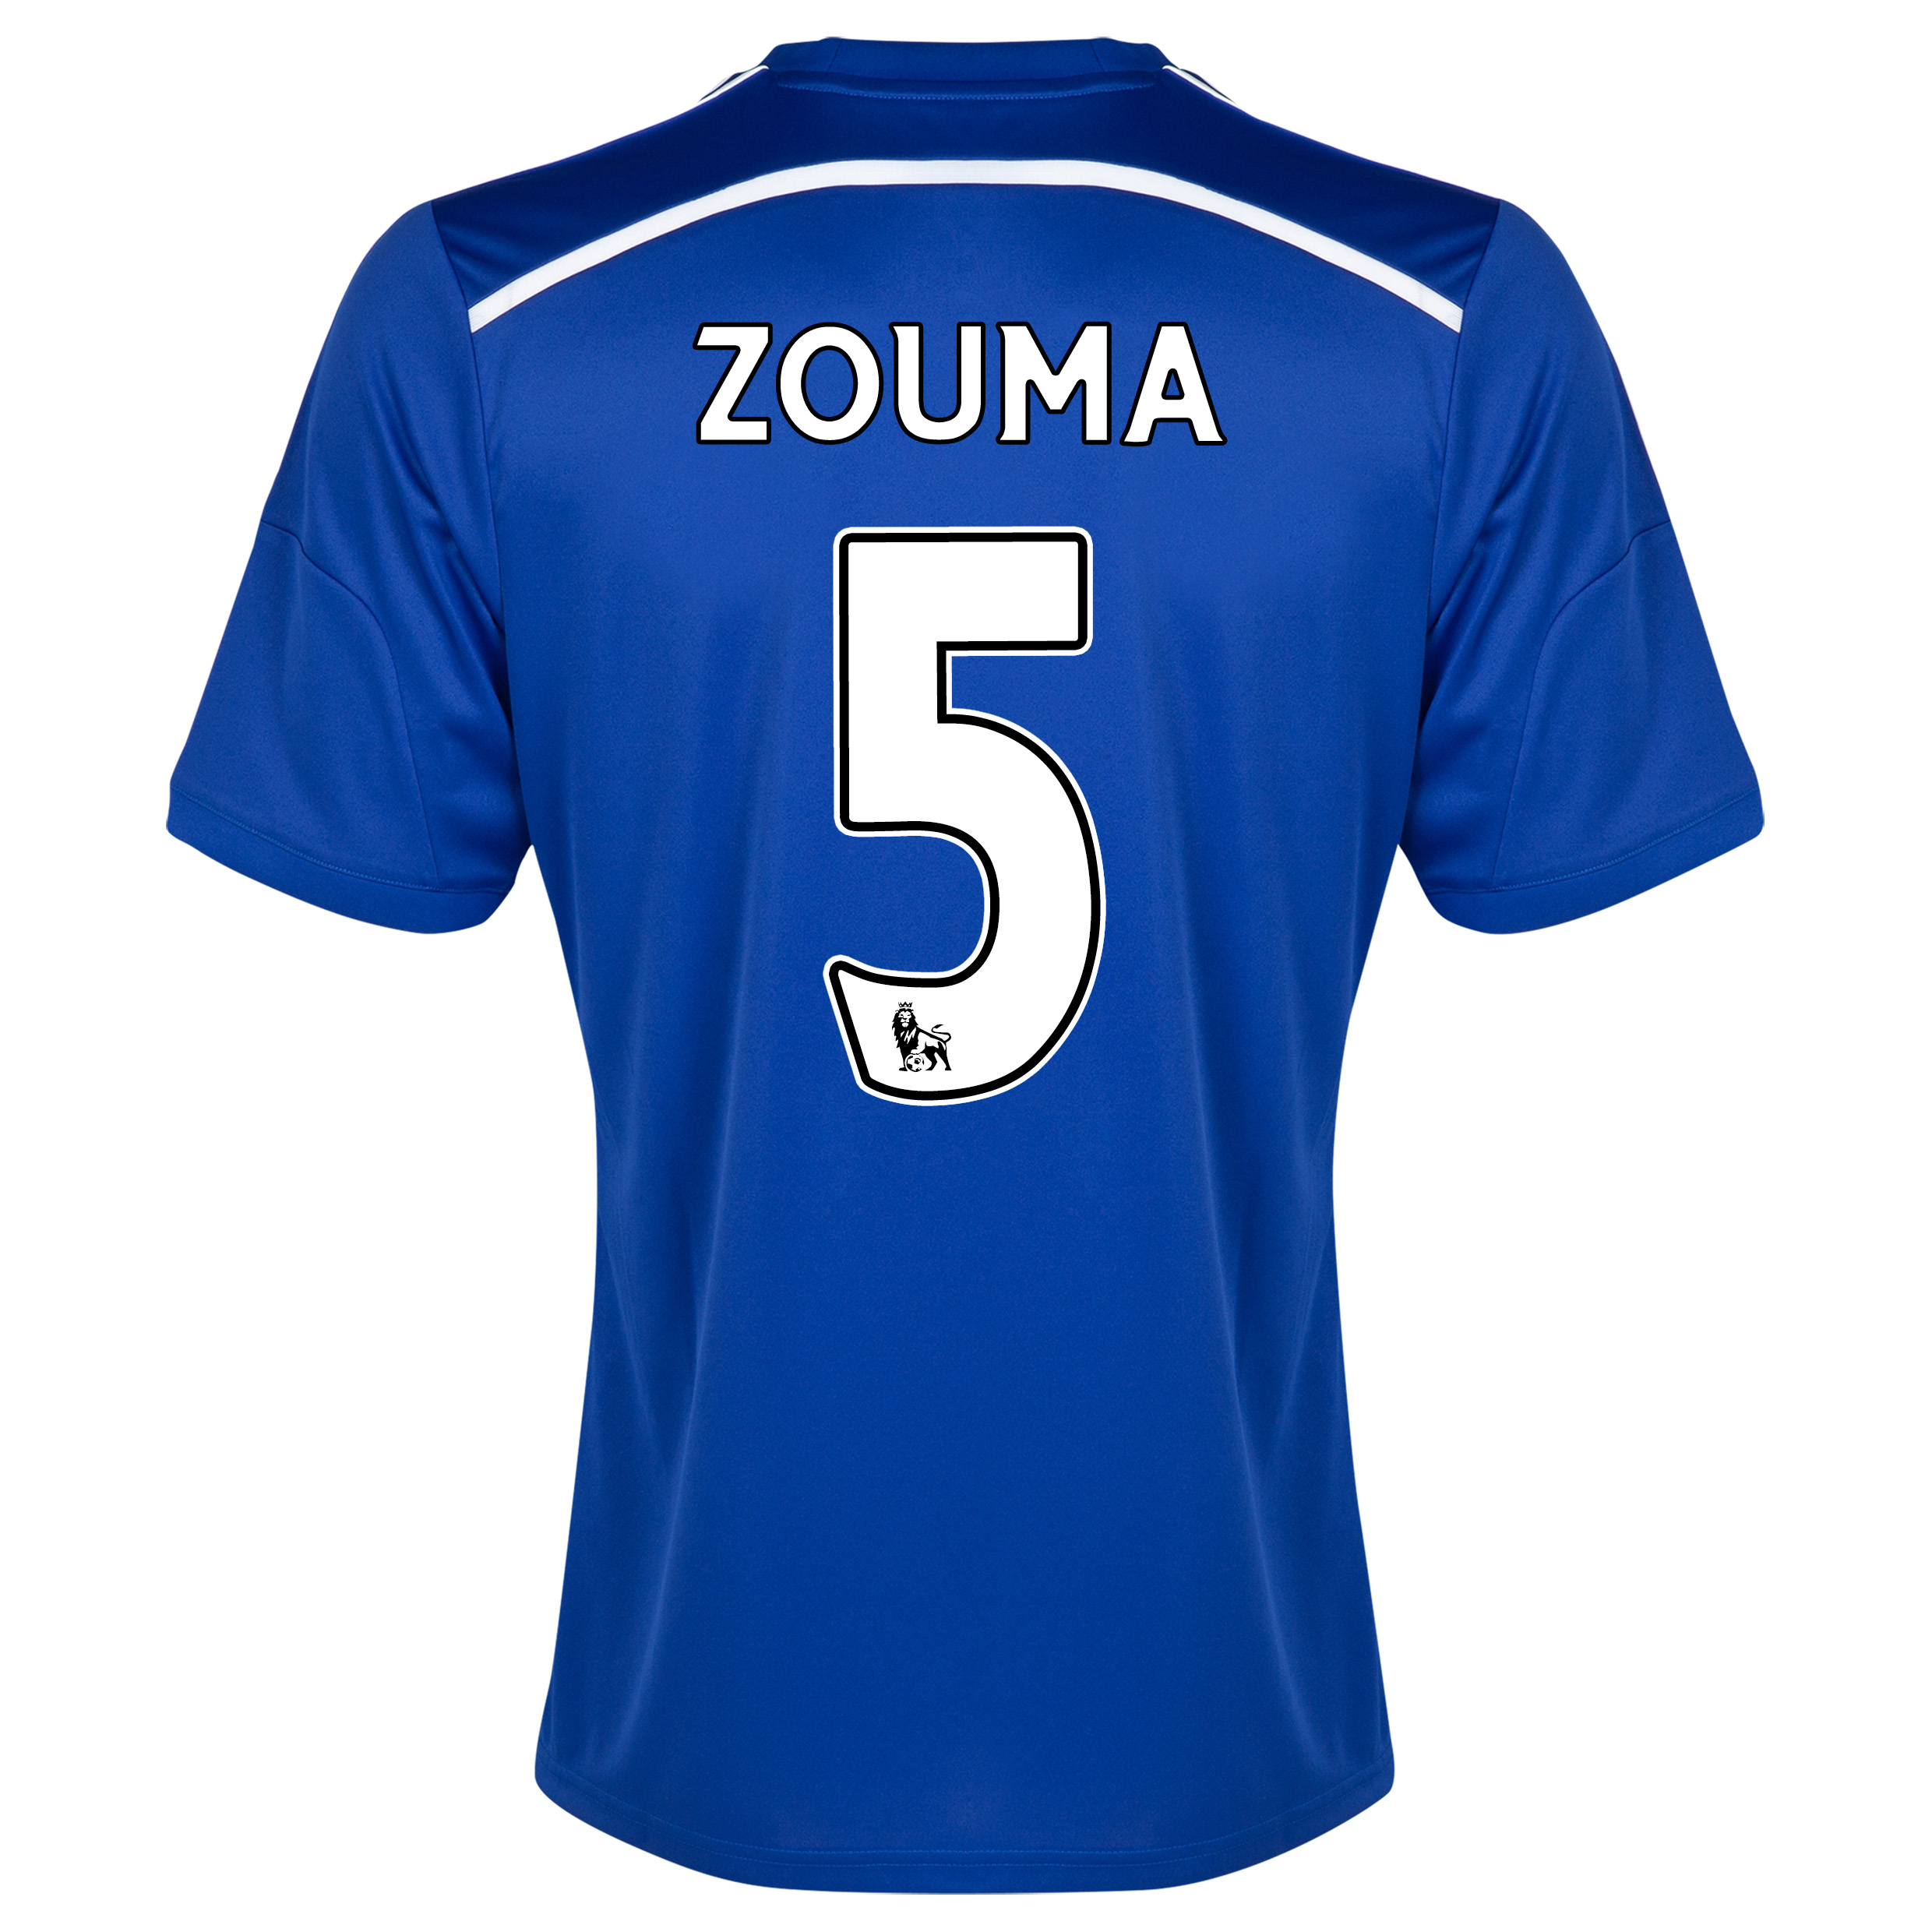 Chelsea Home Shirt 2014/15 - Outsize with ZOUMA 5 printing